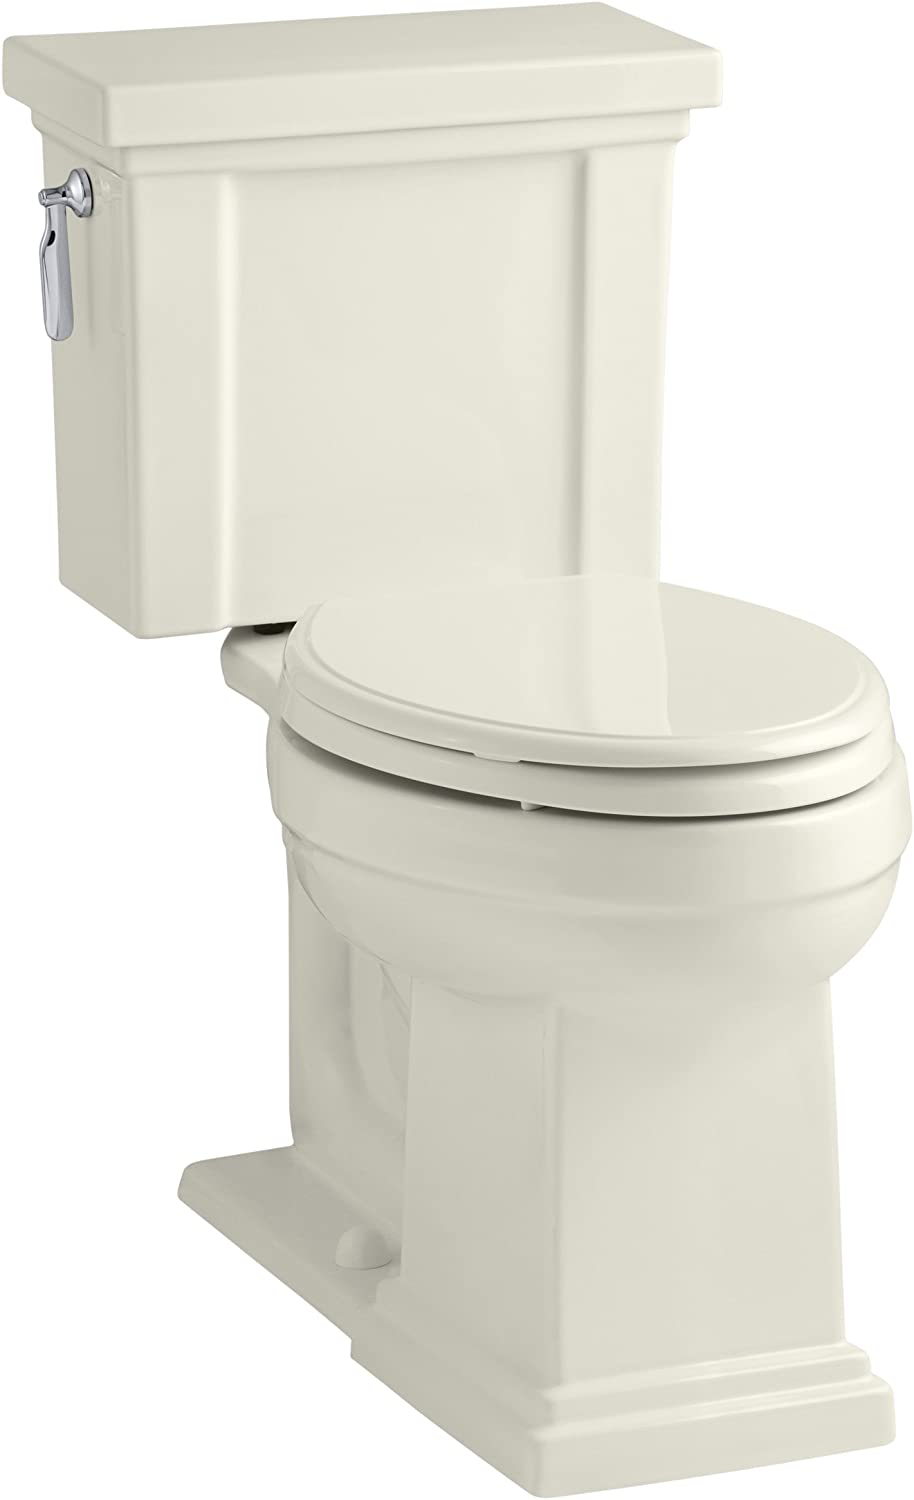 KOHLER K-3950-96 Tresham Comfort Height Two-Piece Elongated 1.28 GPF Toilet with AquaPiston Flush Technology and Left-Hand Trip Lever, Biscuit